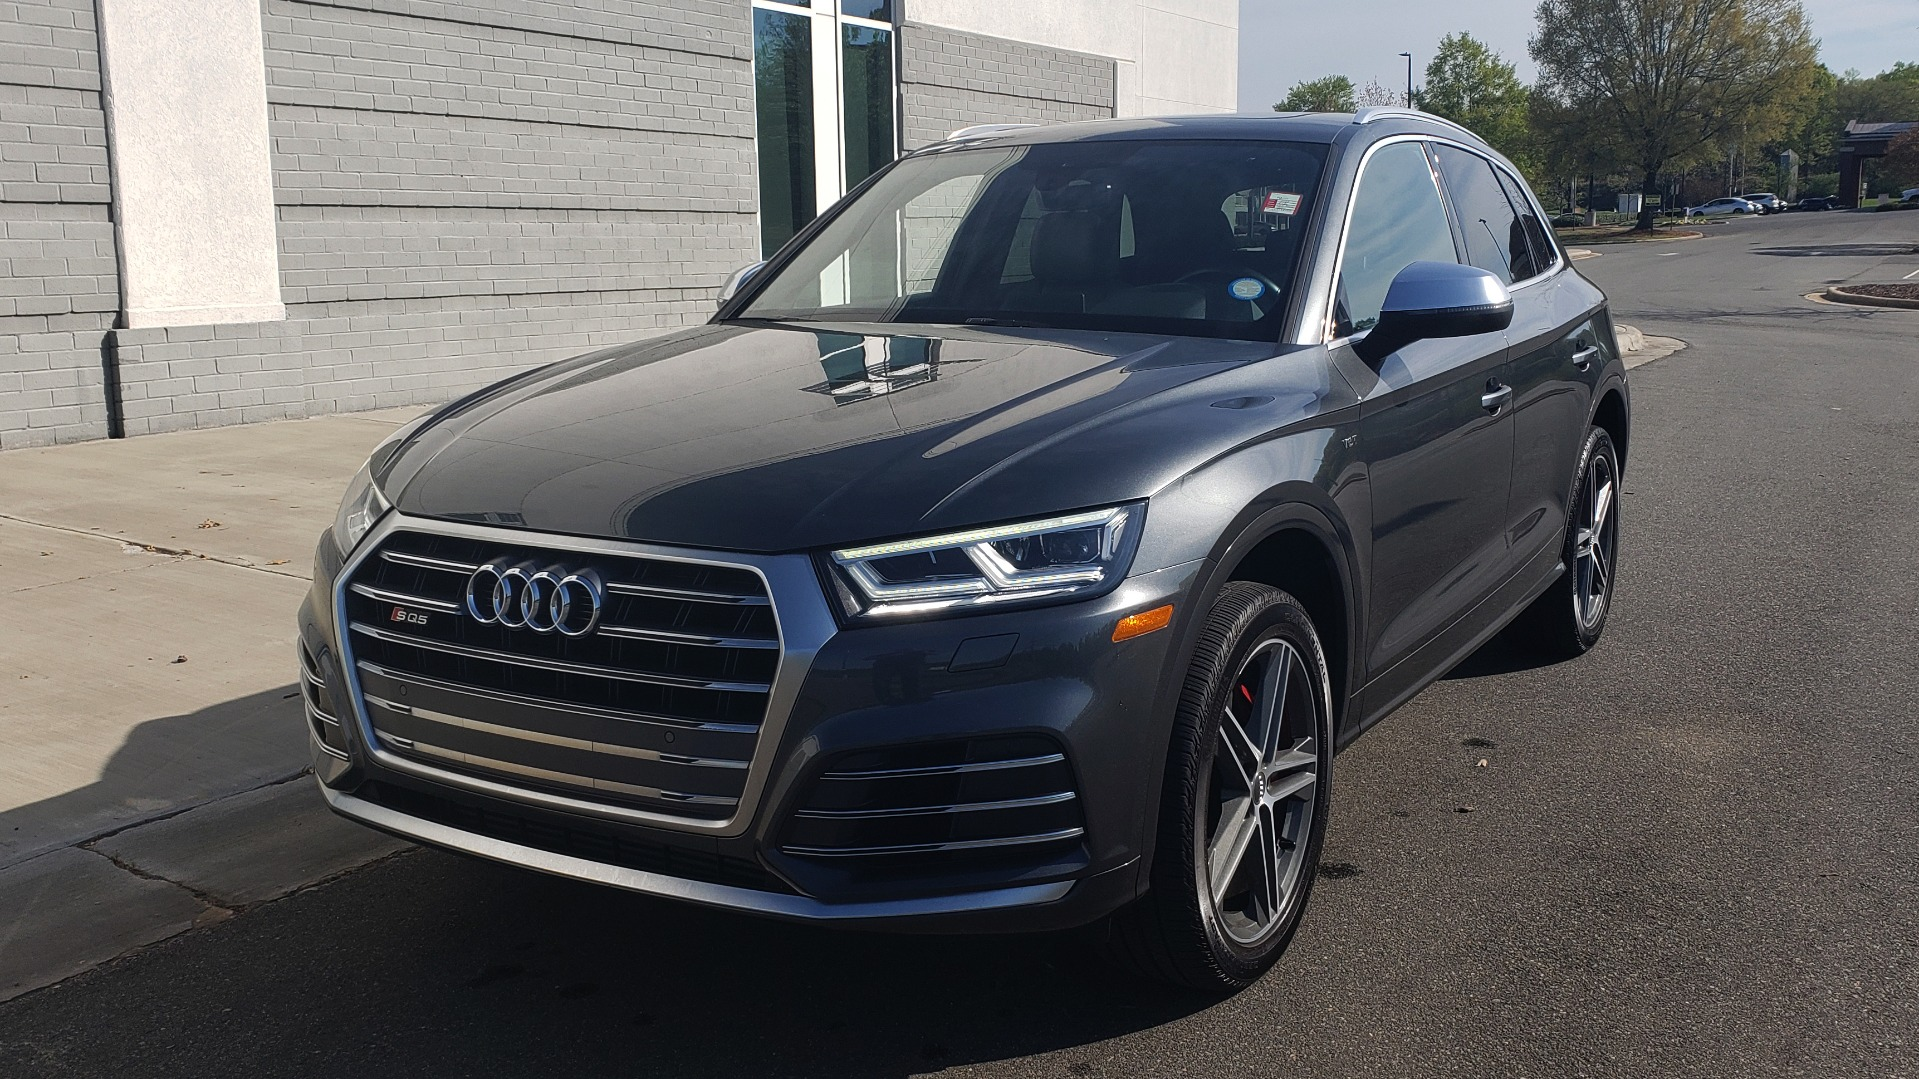 Used 2018 Audi SQ5 PREMIUM PLUS SPORT / NAV / B&O SND / SUNROOF / REARVIEW for sale Sold at Formula Imports in Charlotte NC 28227 3